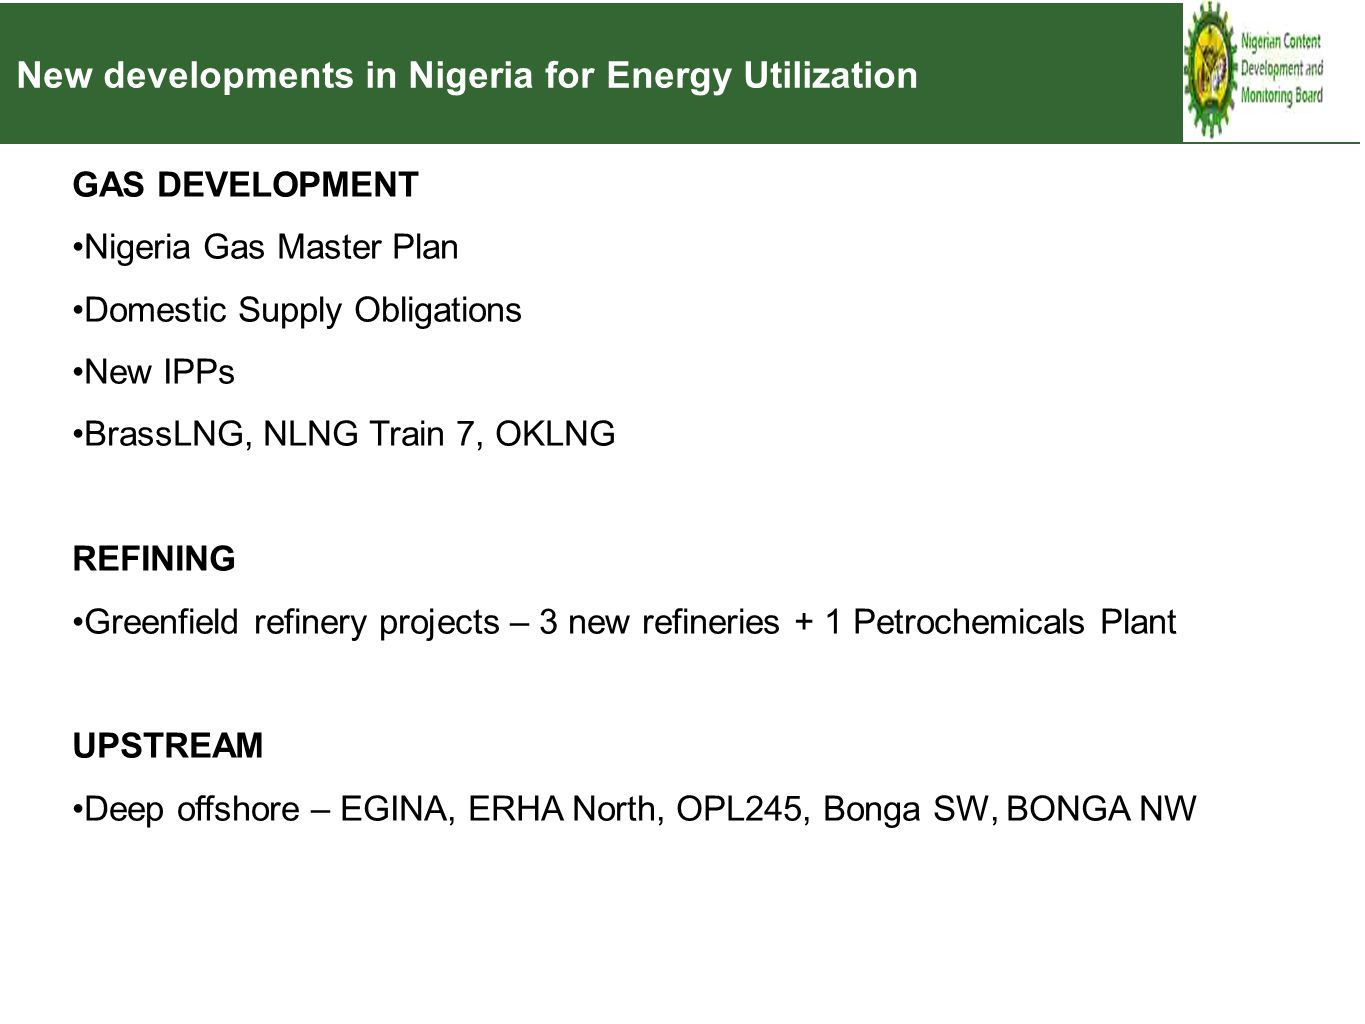 New developments in Nigeria for Energy Utilization GAS DEVELOPMENT Nigeria Gas Master Plan Domestic Supply Obligations New IPPs BrassLNG, NLNG Train 7, OKLNG REFINING Greenfield refinery projects – 3 new refineries + 1 Petrochemicals Plant UPSTREAM Deep offshore – EGINA, ERHA North, OPL245, Bonga SW, BONGA NW